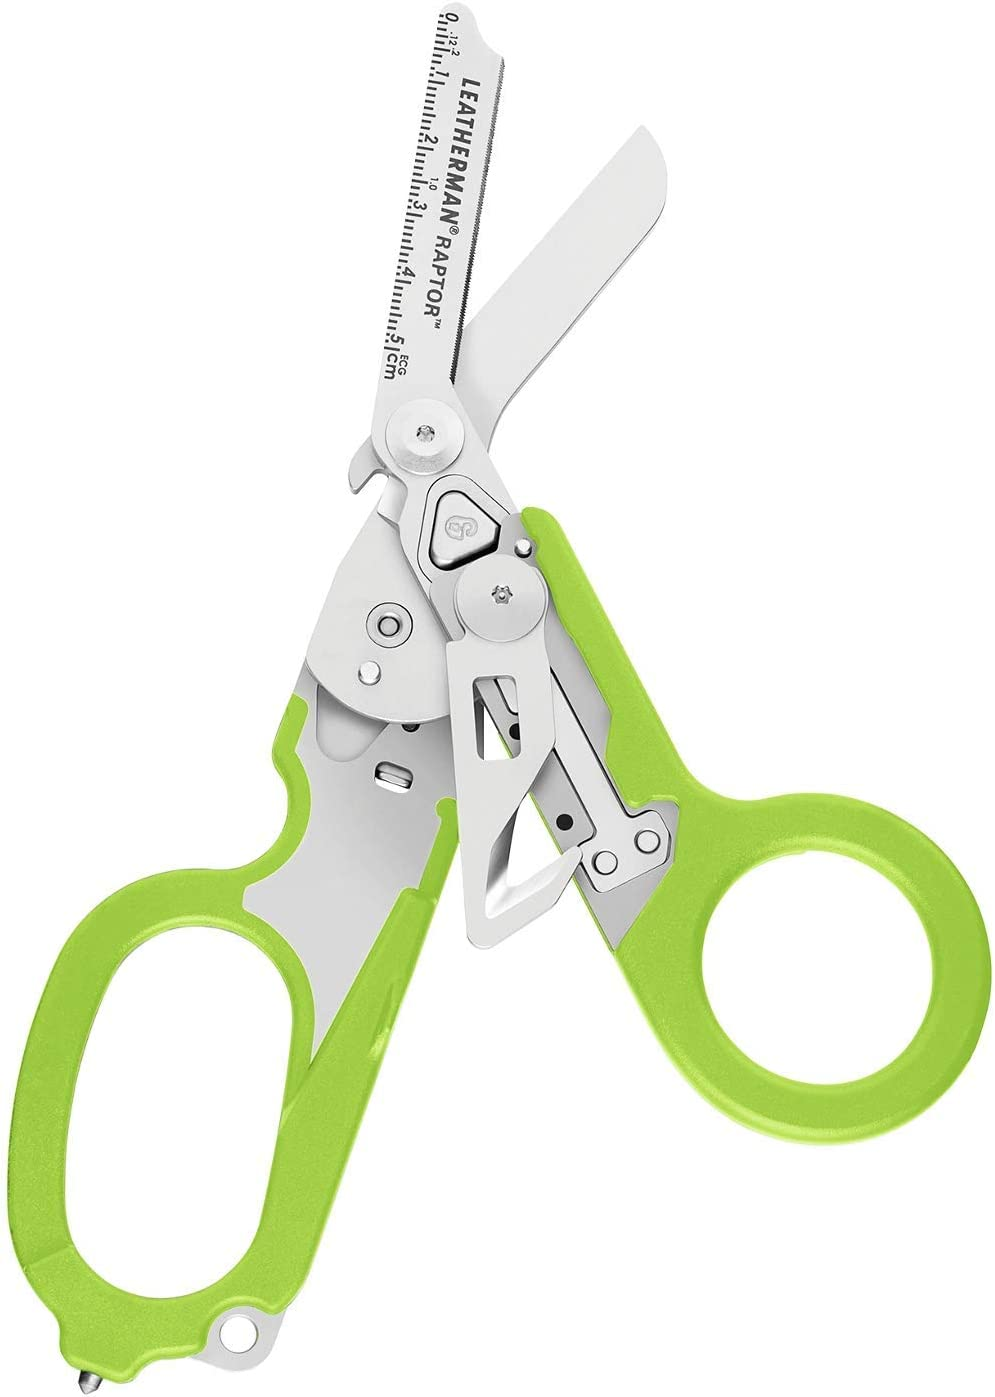 New products, world's highest quality popular! LEATHERMAN Unisex's Raptor Emergency Reservation Tool Medical Shears-Green